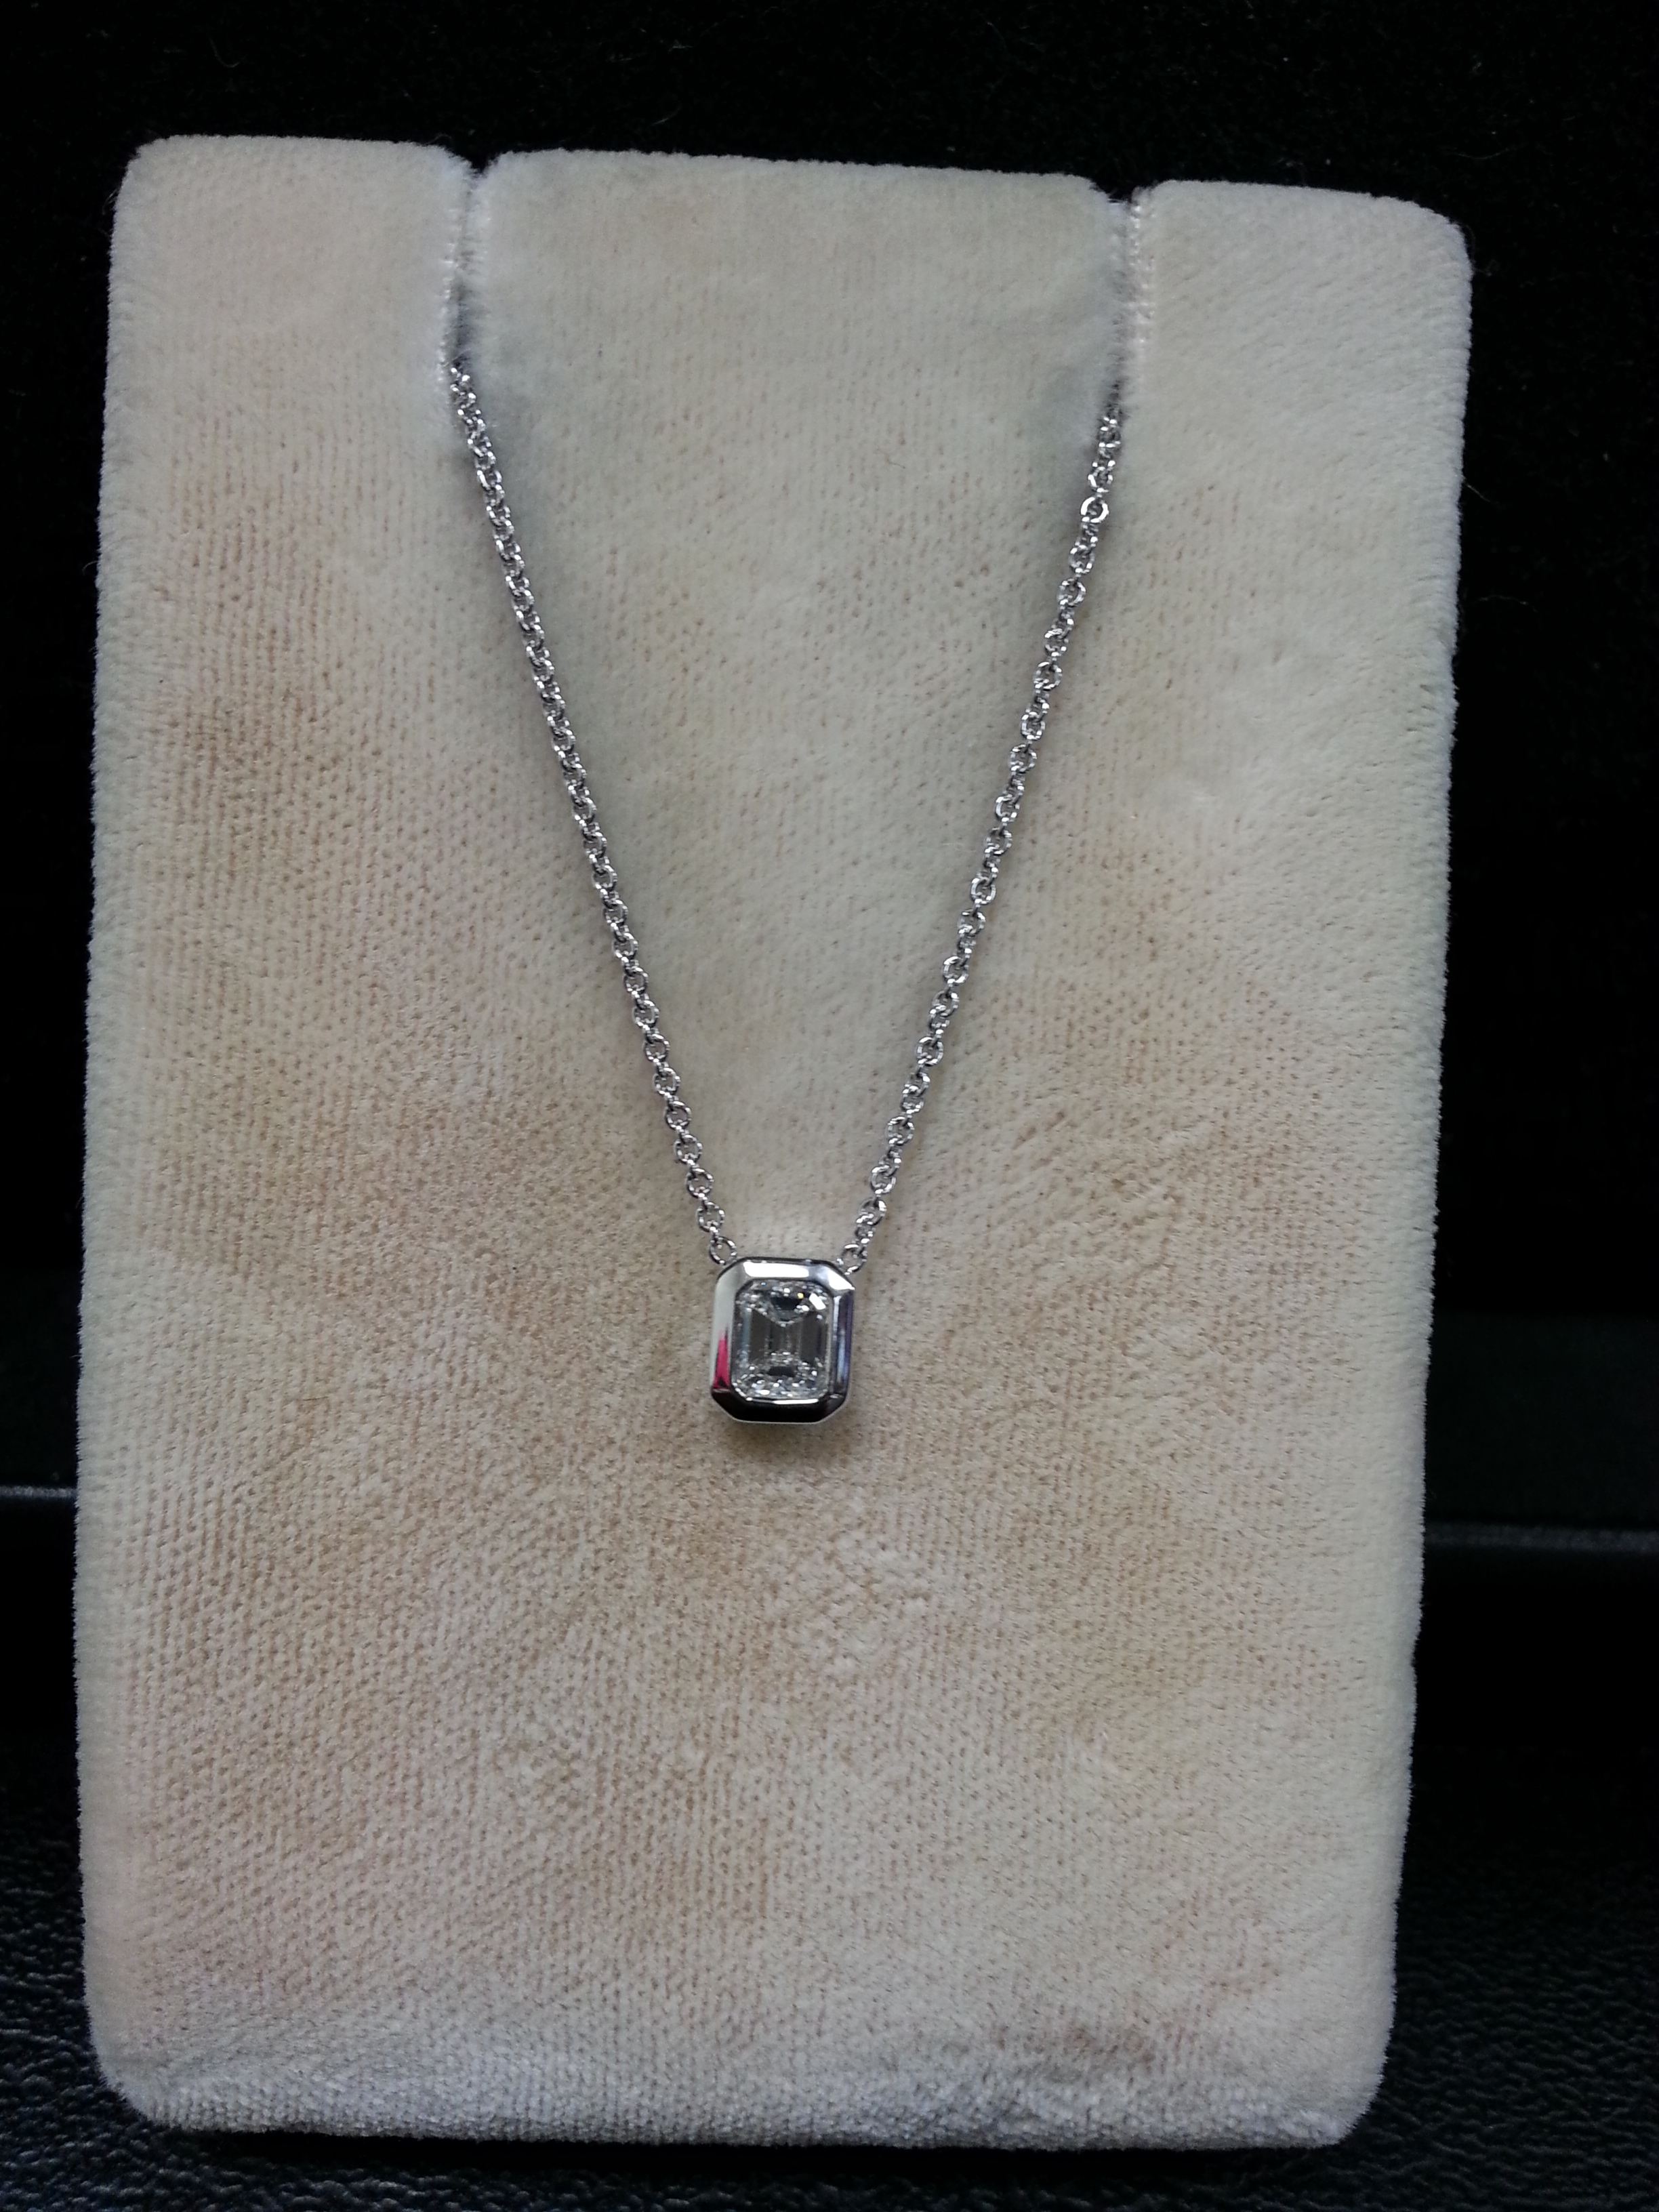 "18k White Gold Bezel Set Emerald Cut Diamond Pendant on 18k White Gold Adjustable 16""-18"" Chain. E/SI1 D.31ct"